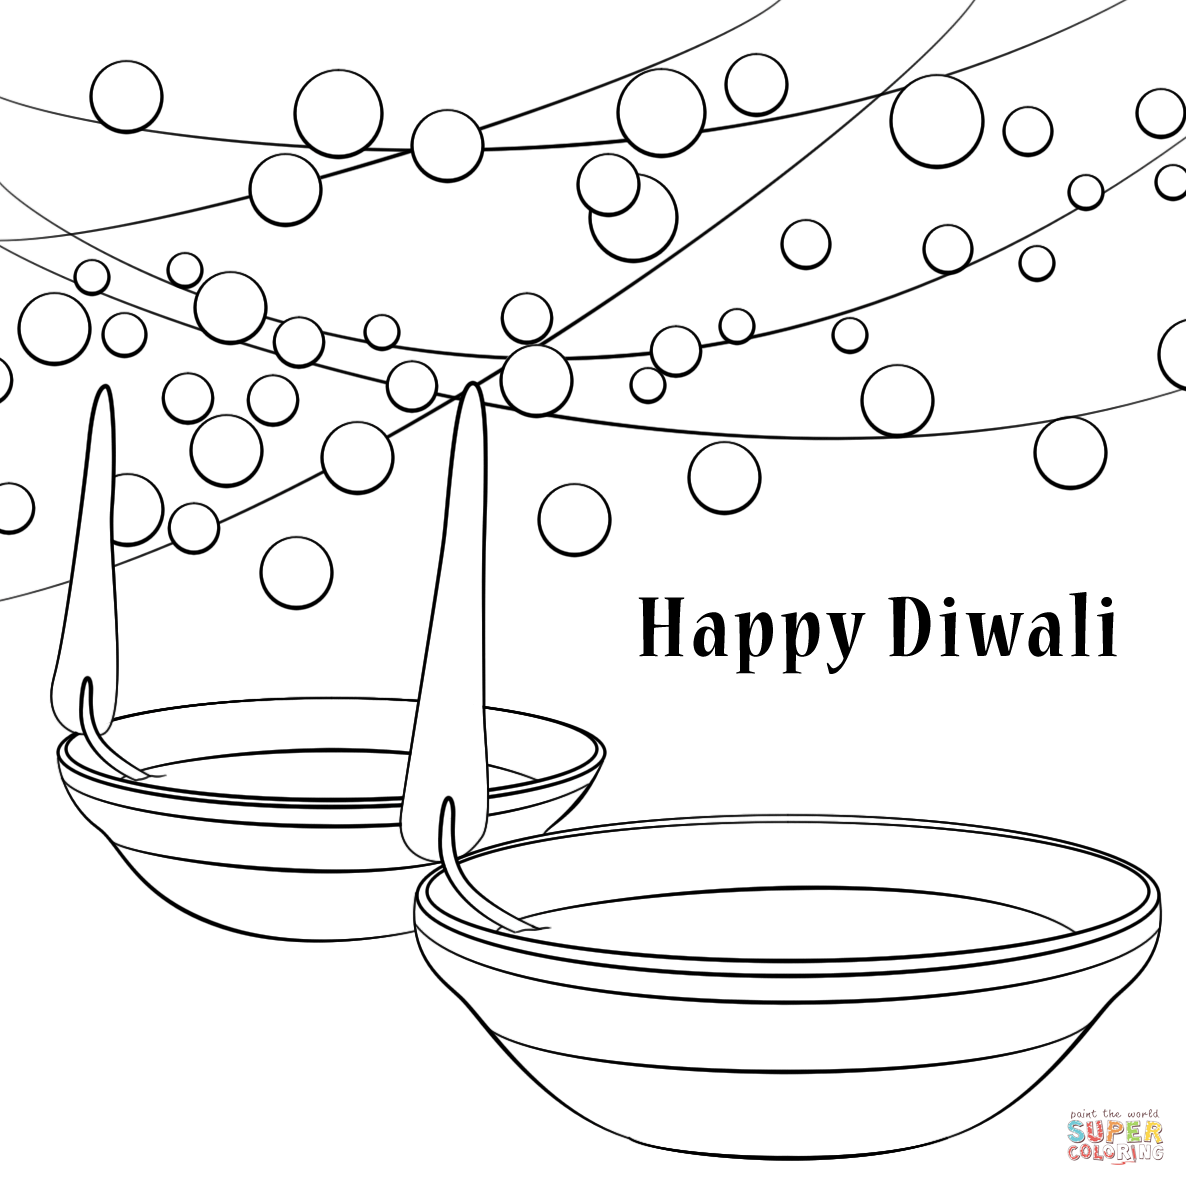 Diwali Black And White Pictures Happy Diwali Coloring Page Free Printable Coloring Pages